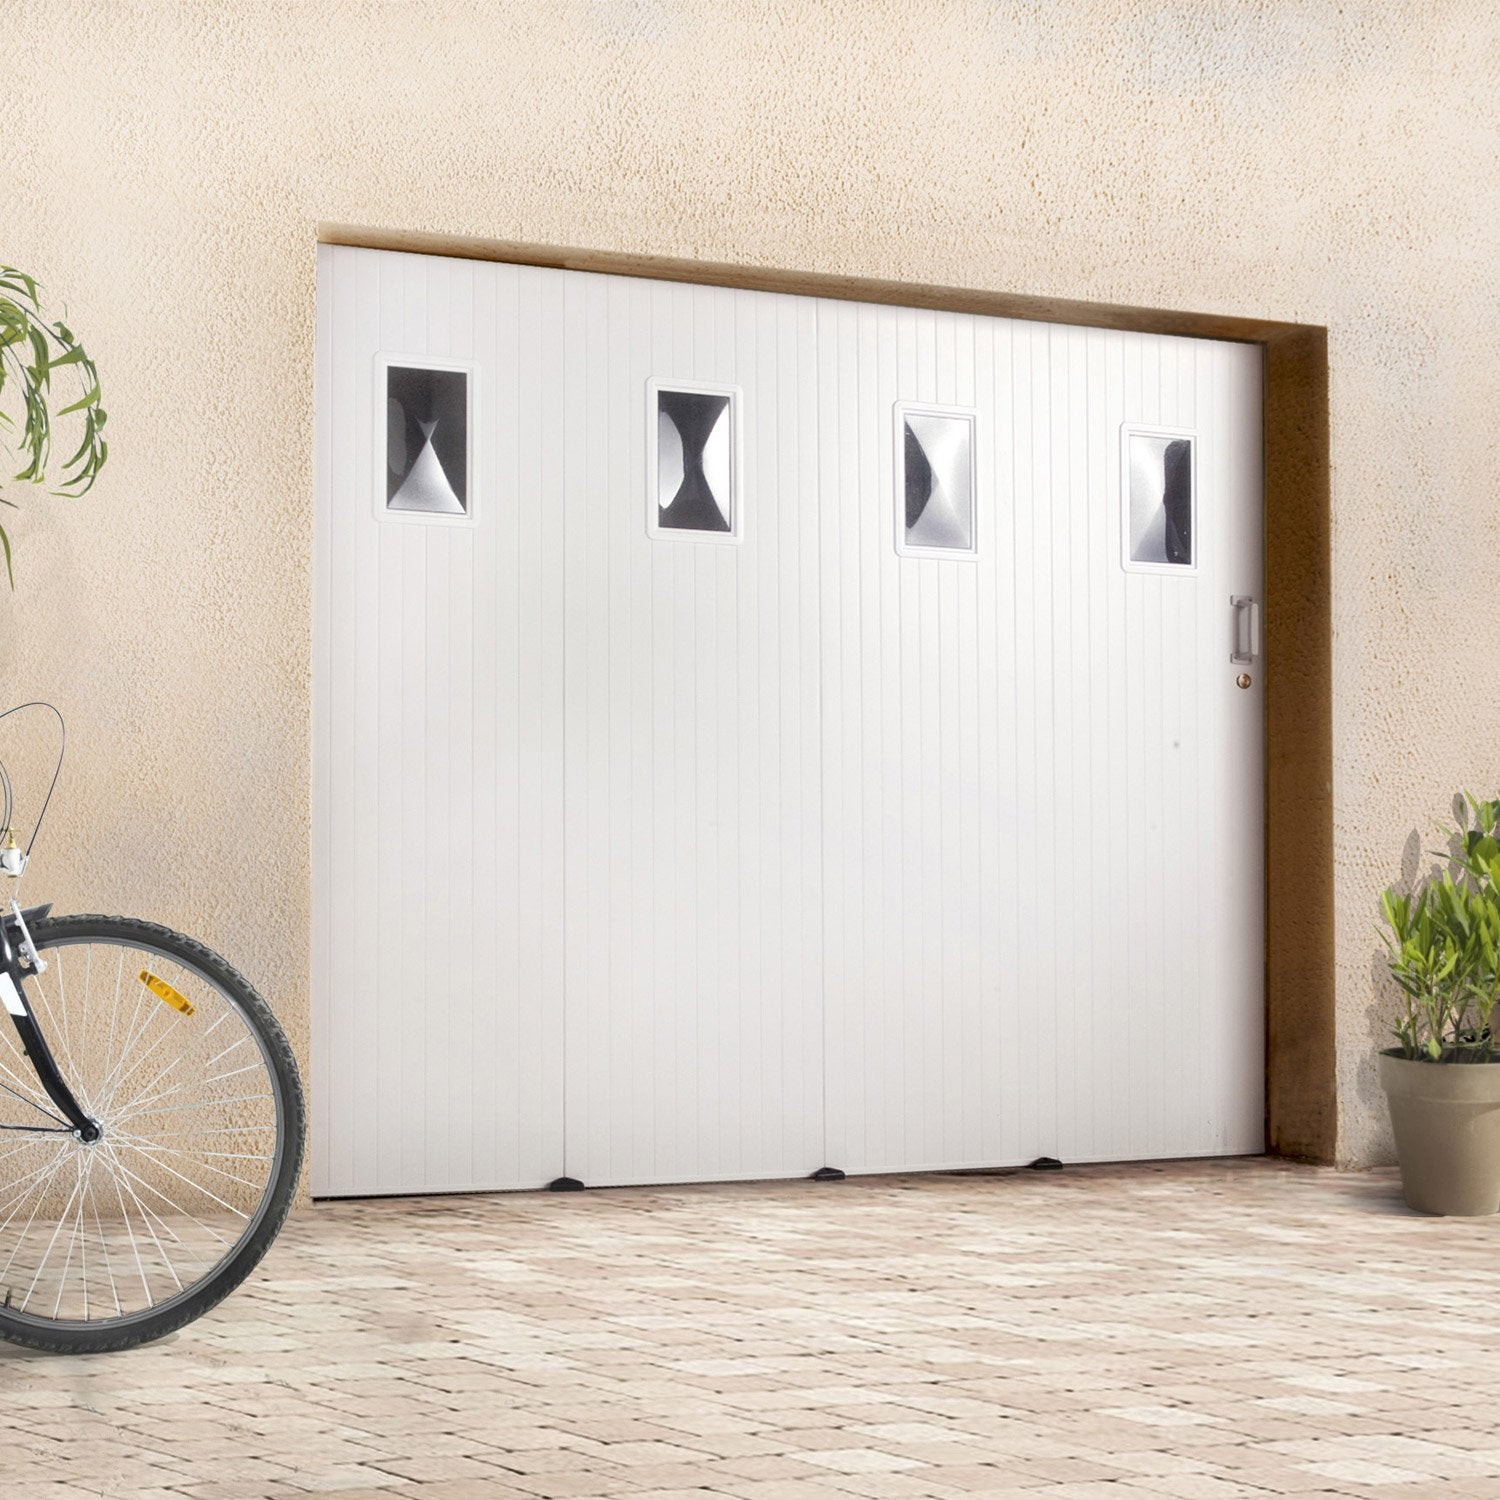 Pose d 39 une porte de garage coulissante leroy merlin for Porte de garage chez leroy merlin